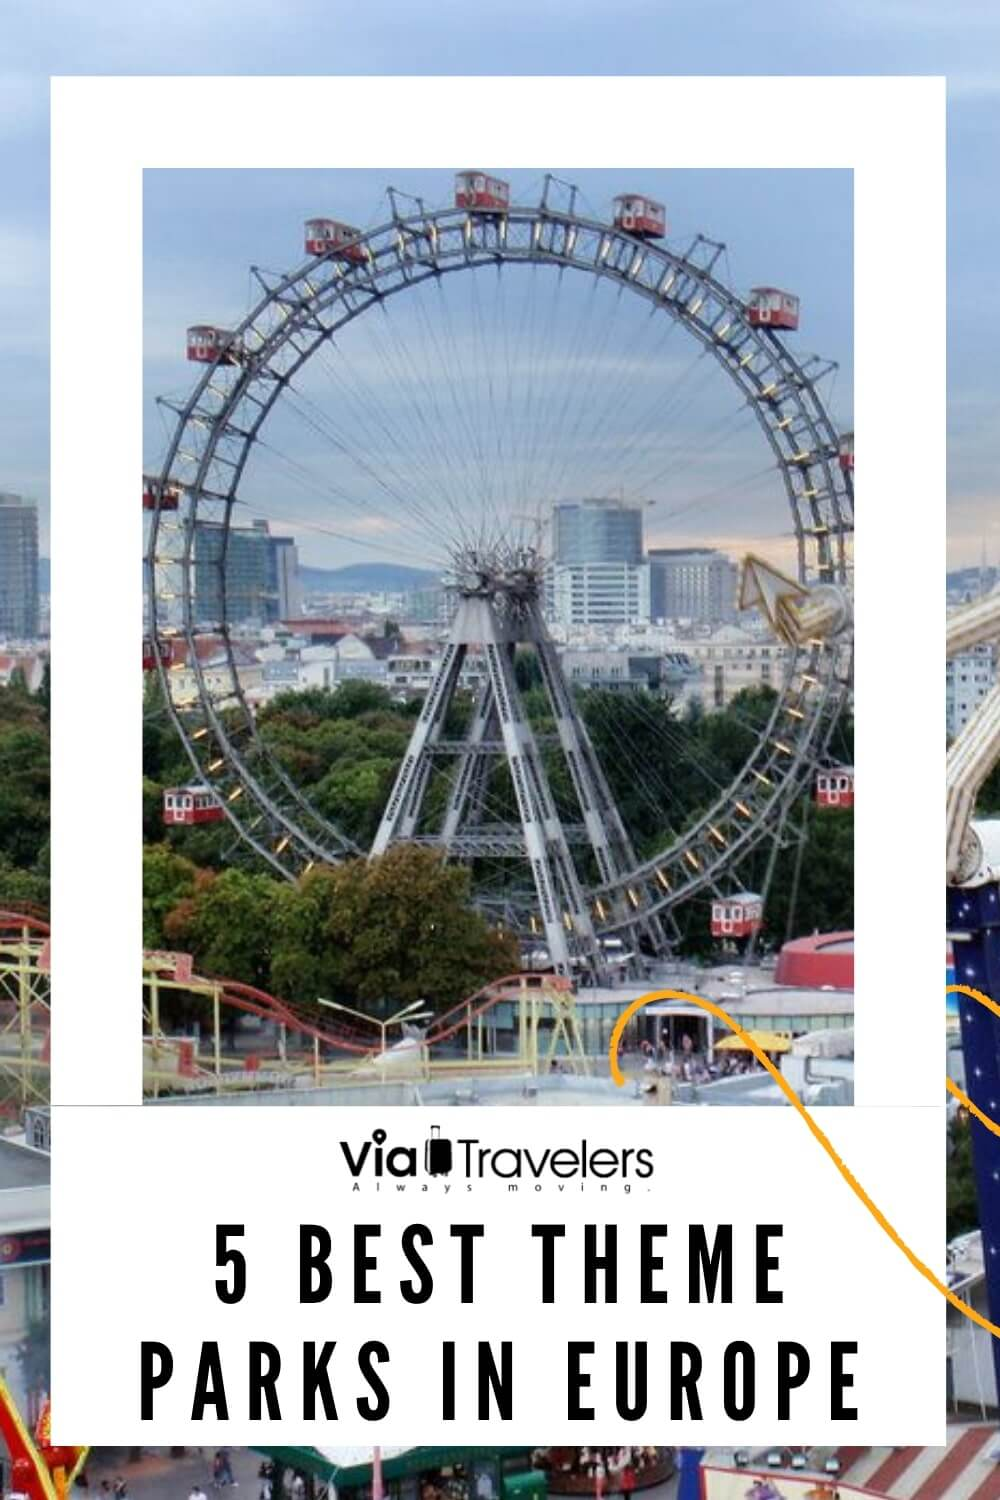 Best Theme Parks in Europe (1)